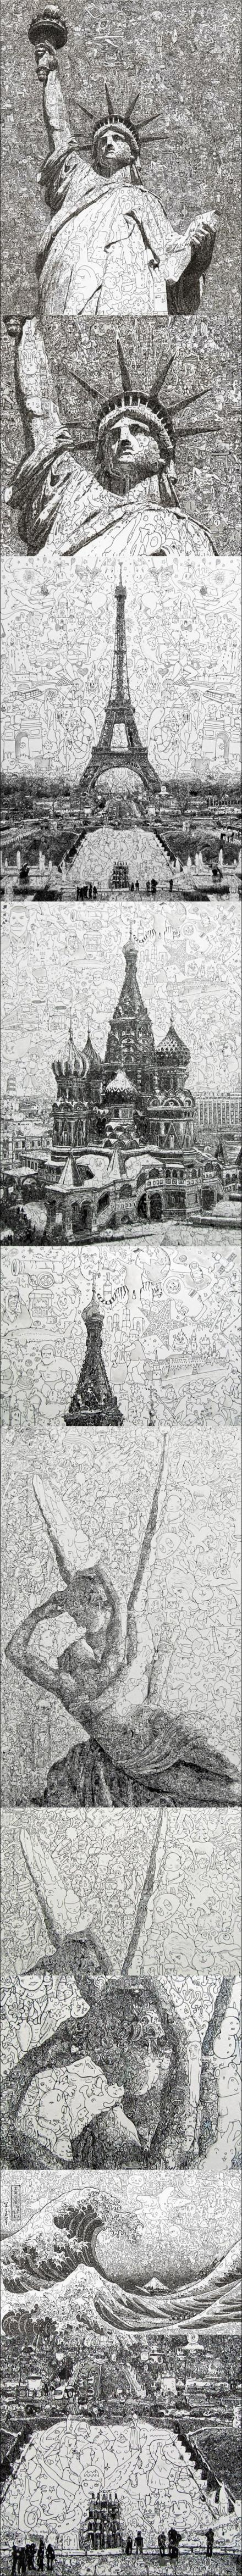 pen and ink illustrations by Sagaki Keita  -  thousands of whimsical characters that are drawn almost completely by hand